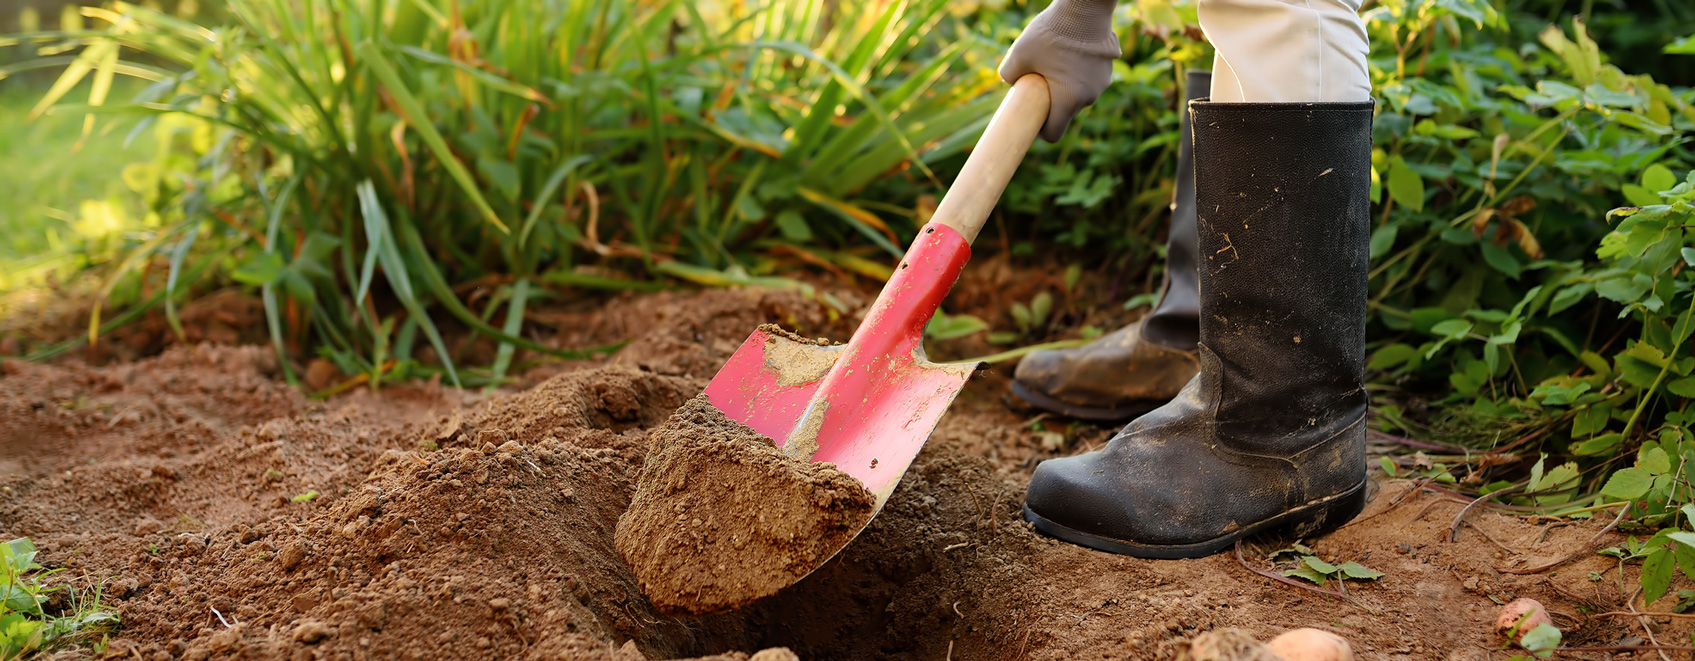 Person with work boots on digging with shovel in a yard.